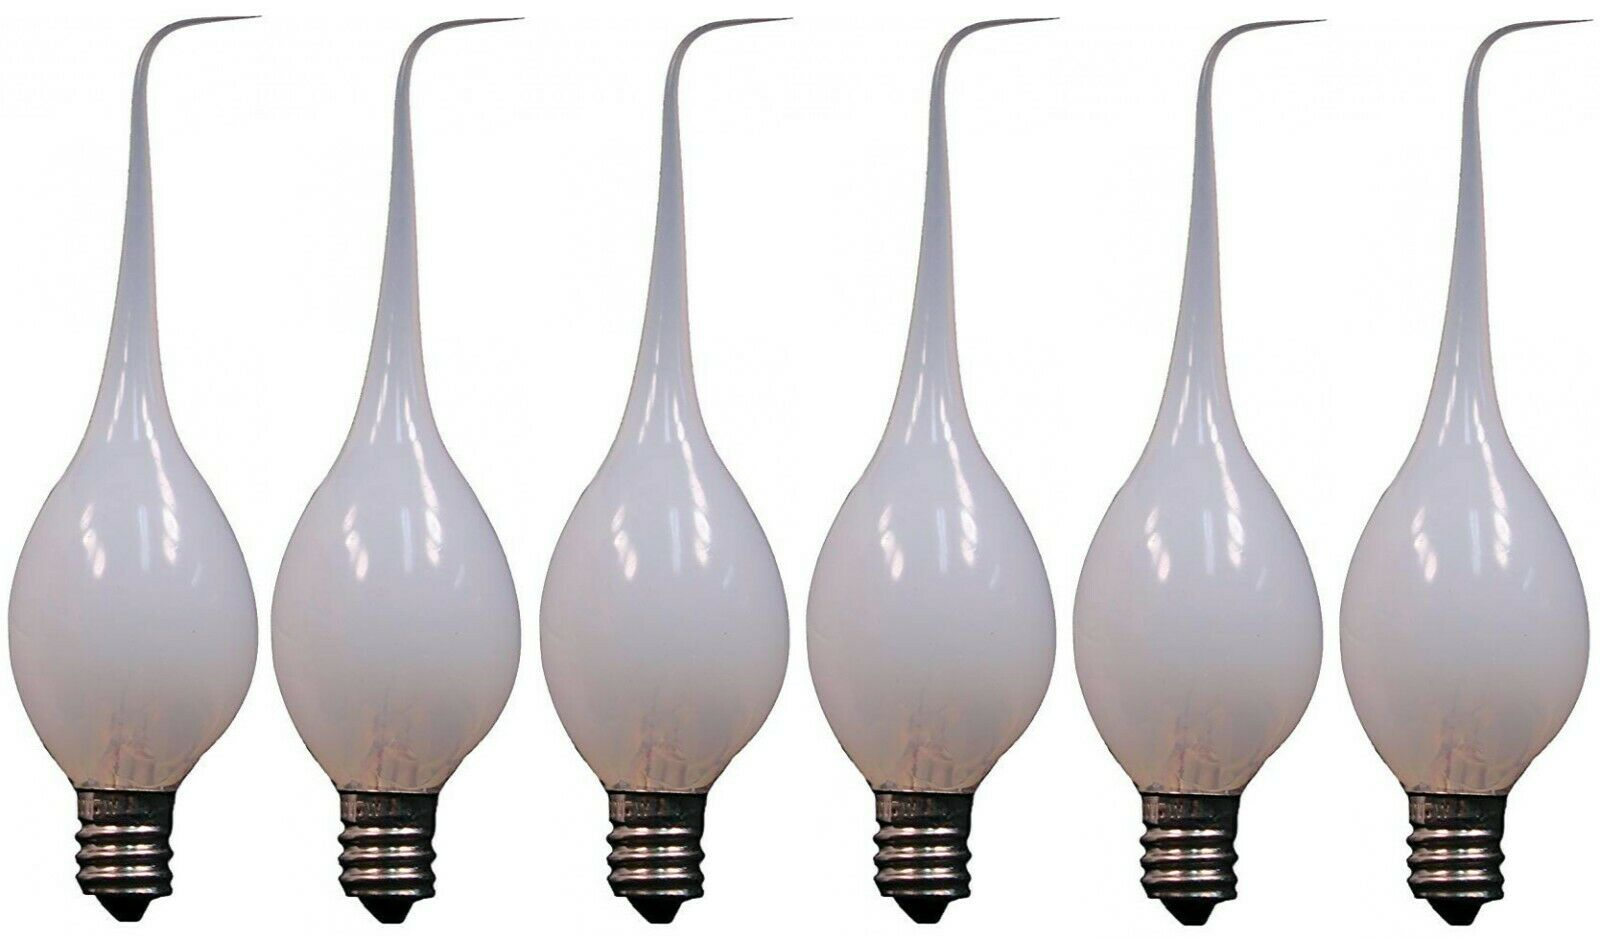 6-Pack, Silicone Dipped Candle Light Bulbs, 7 Watt, Longer Life Country Style Home & Garden